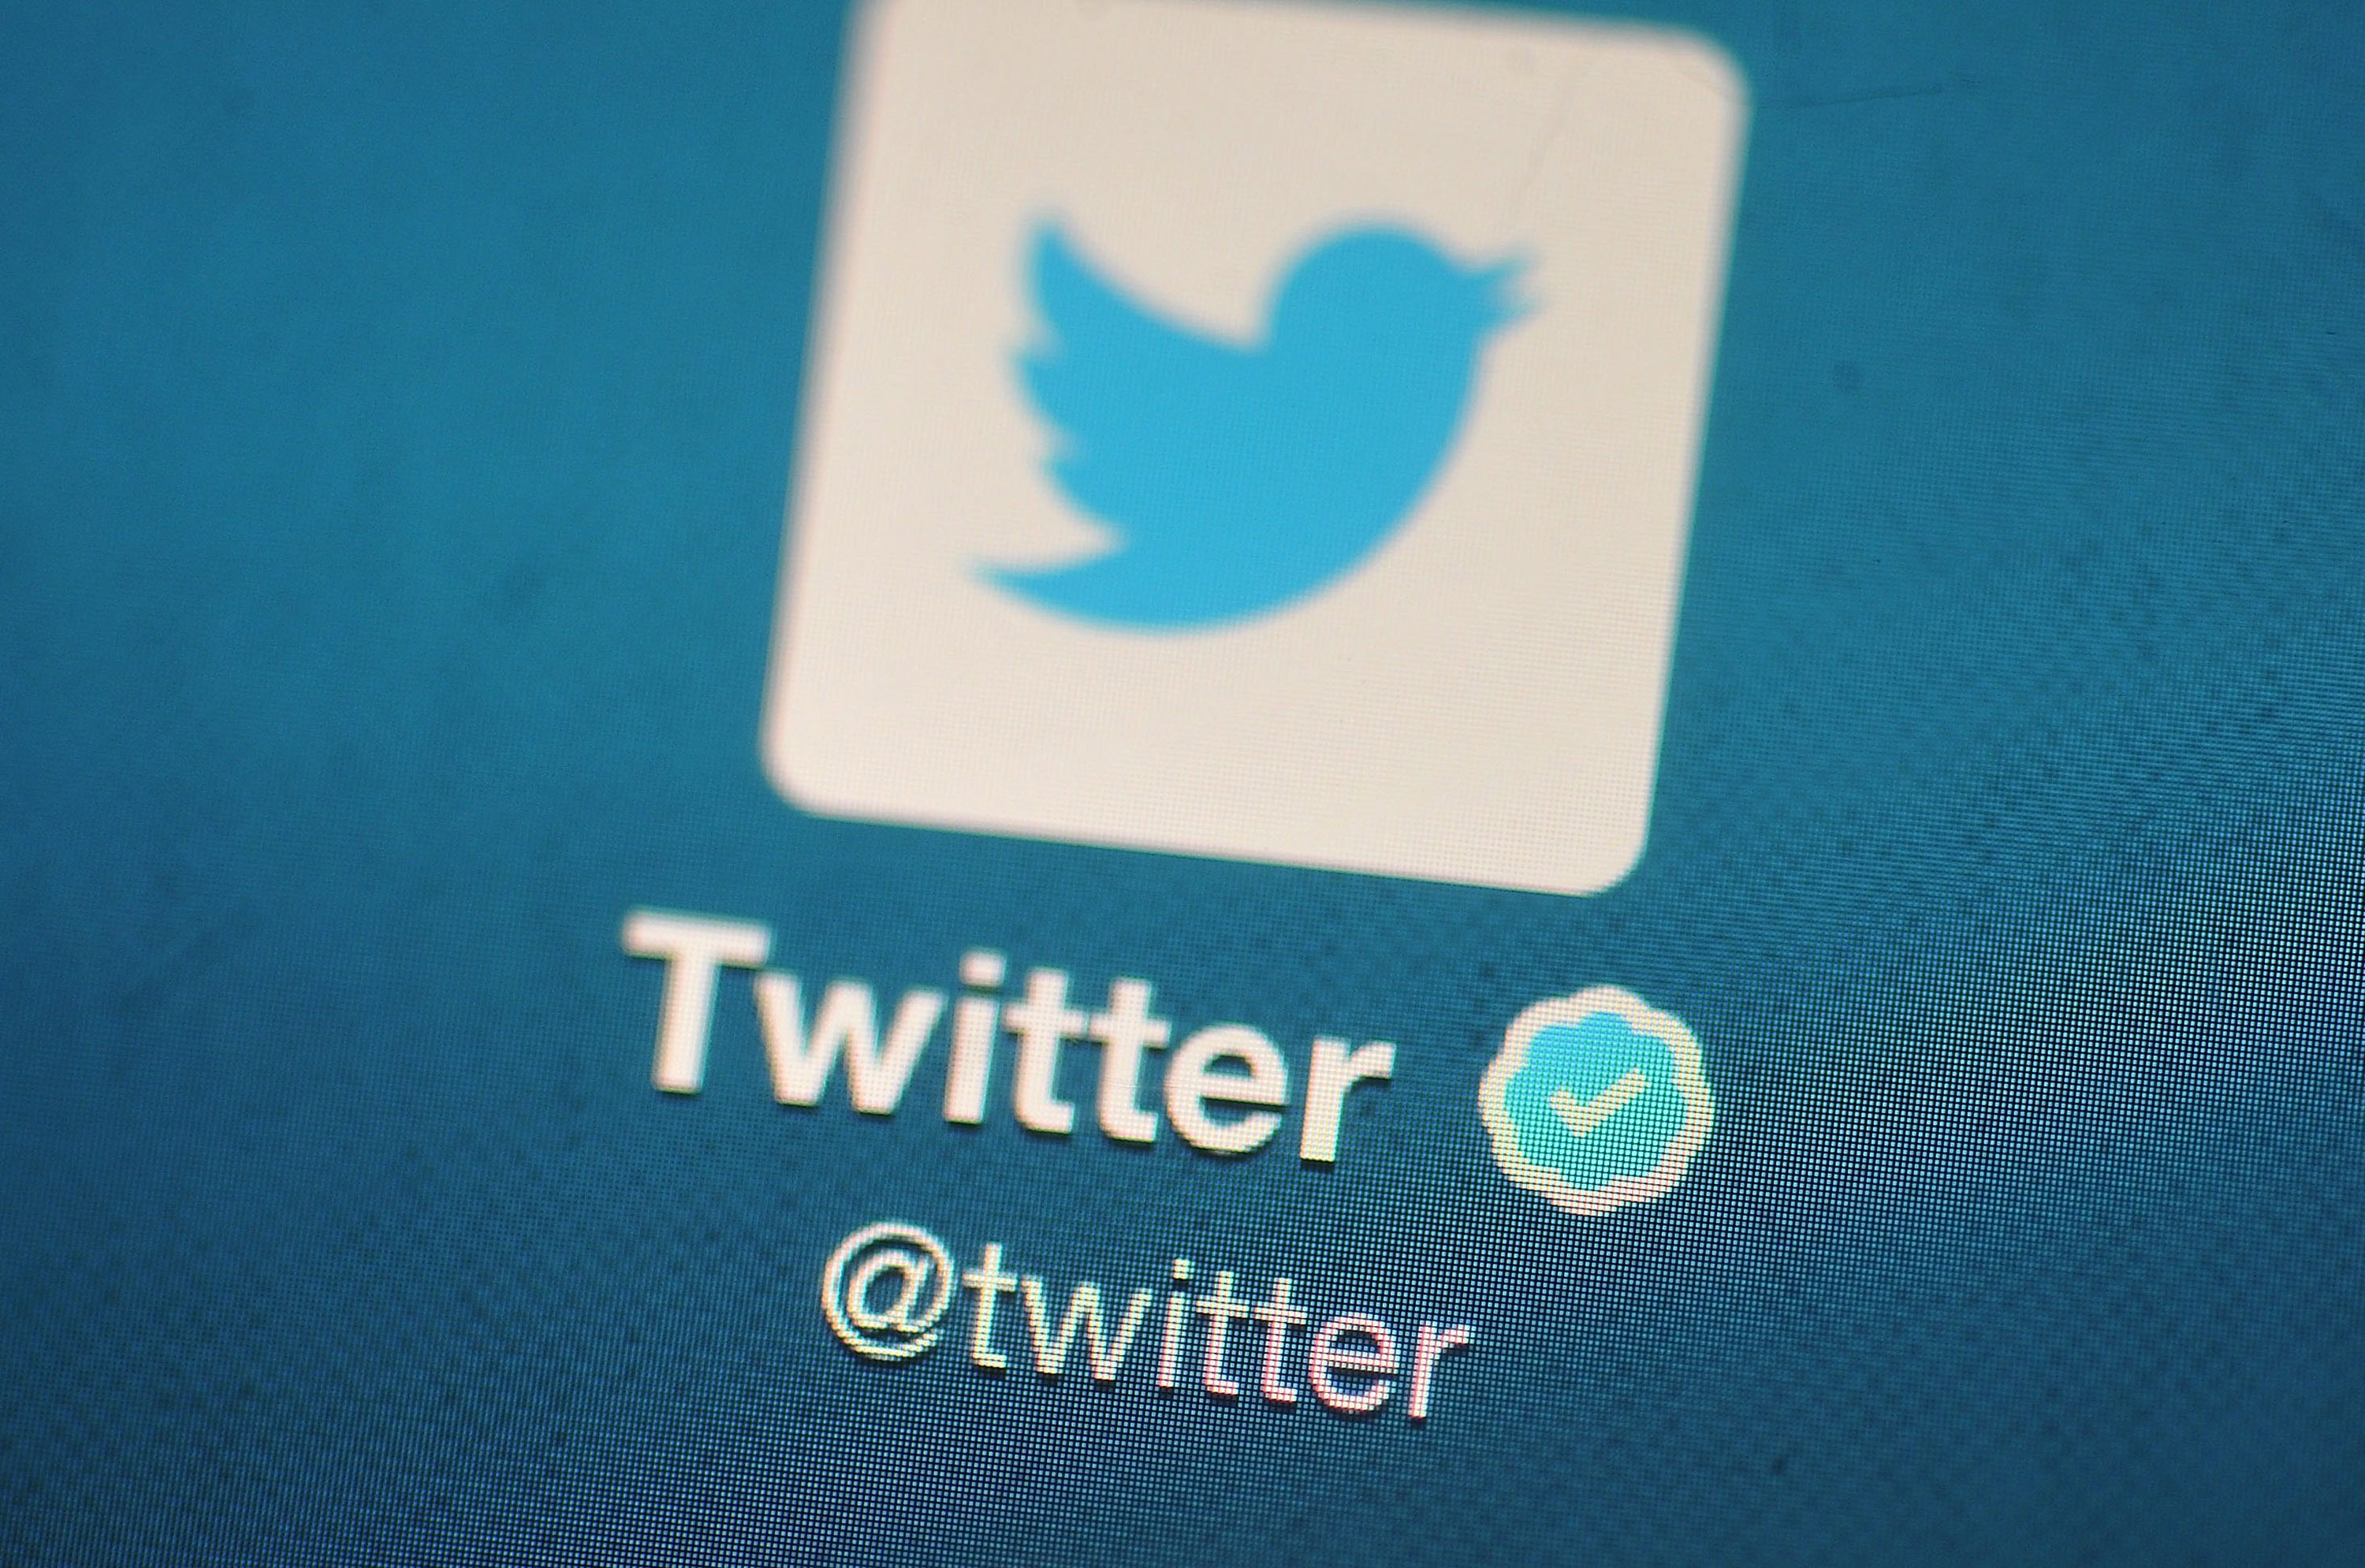 Twitter now lets advertisers target you with Promoted Tweets if they have your email addresses or user ID